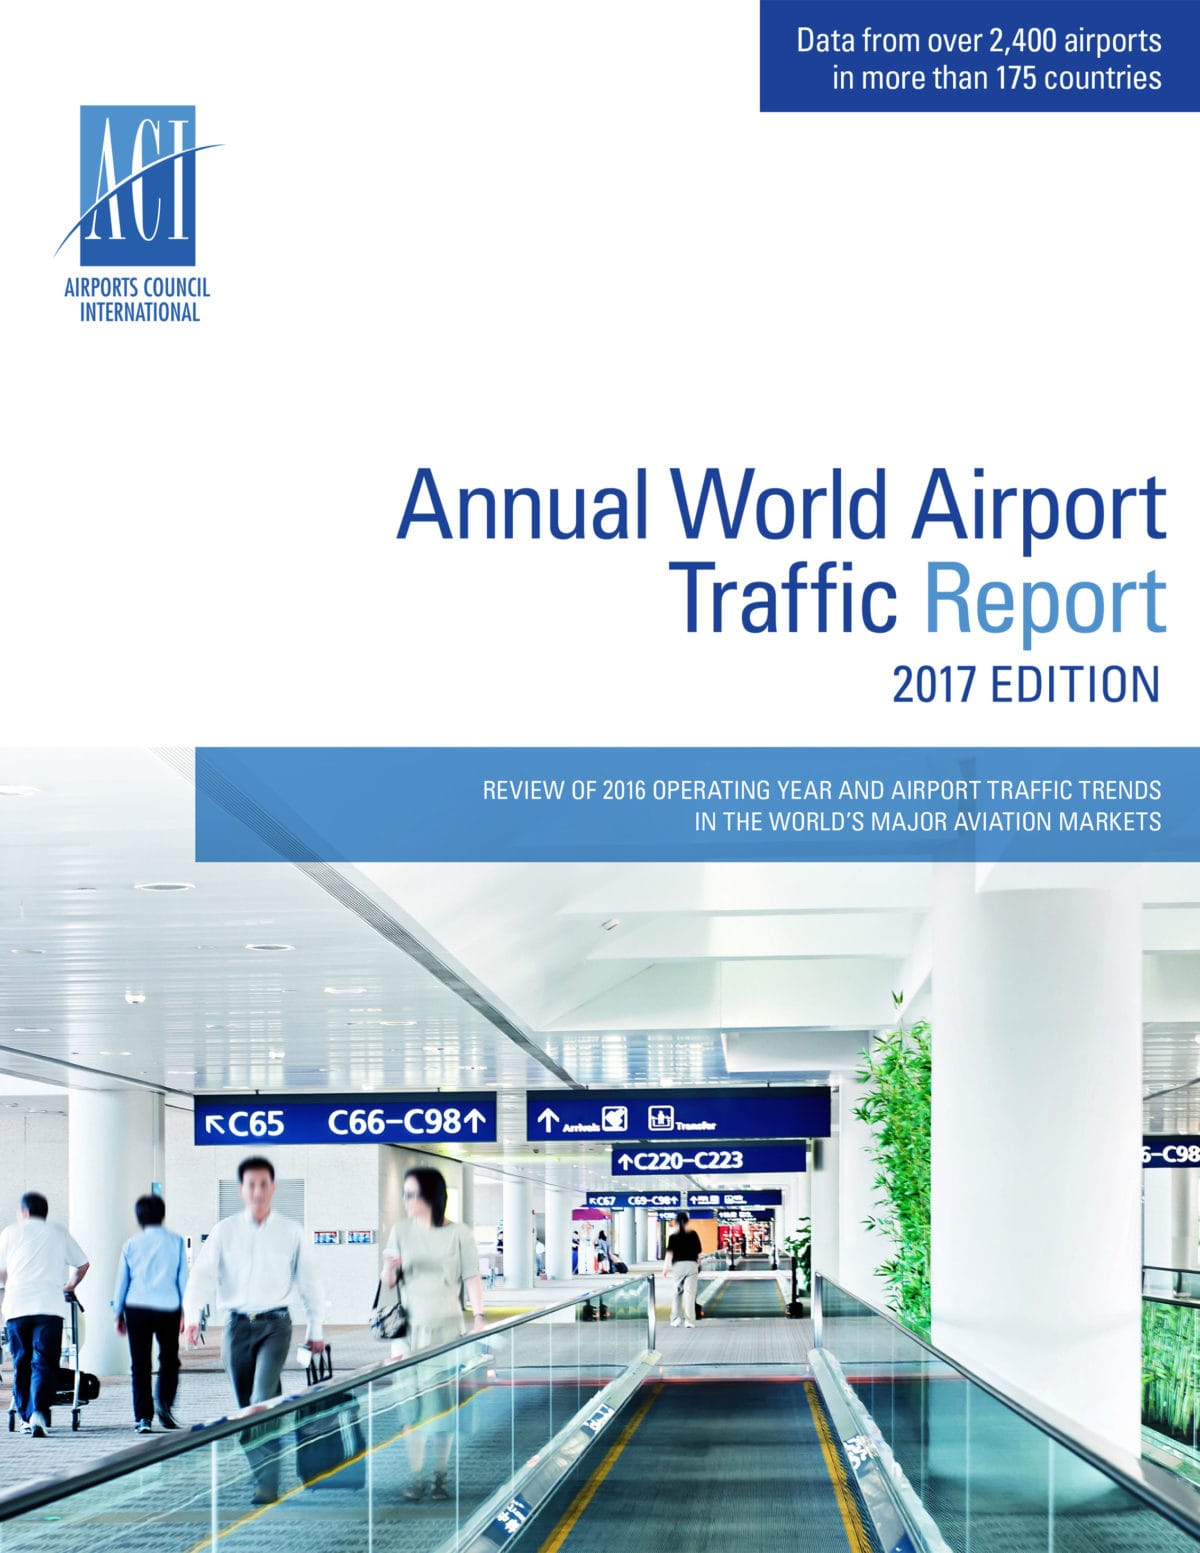 Annual World Airport Traffic Report, 2017